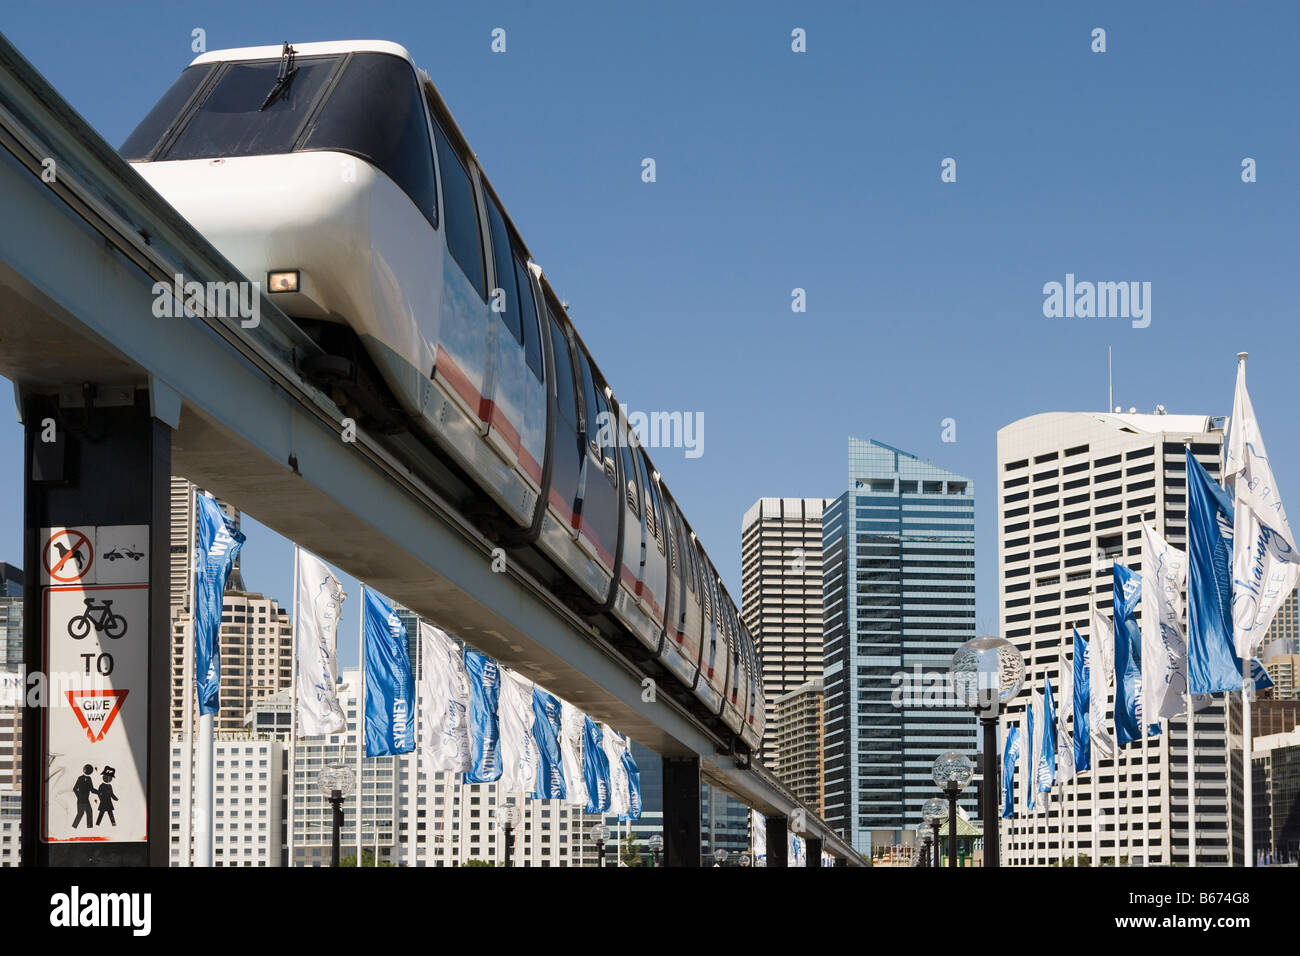 Monorail à Darling Harbour Photo Stock